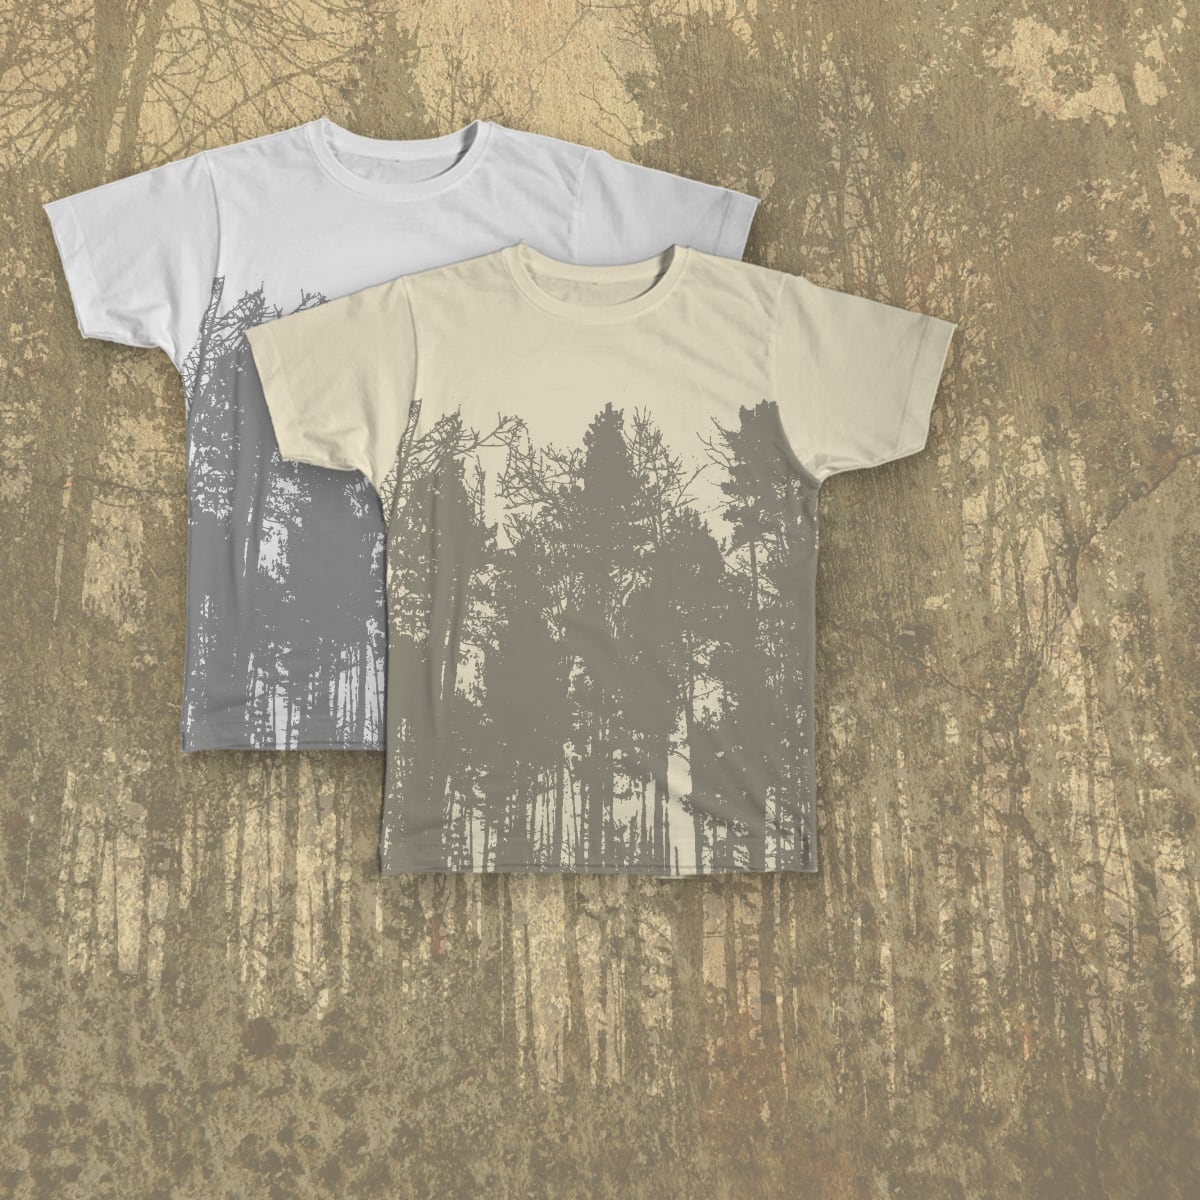 Into the Forest by Giacomo_Marangon and bombo332 on Threadless